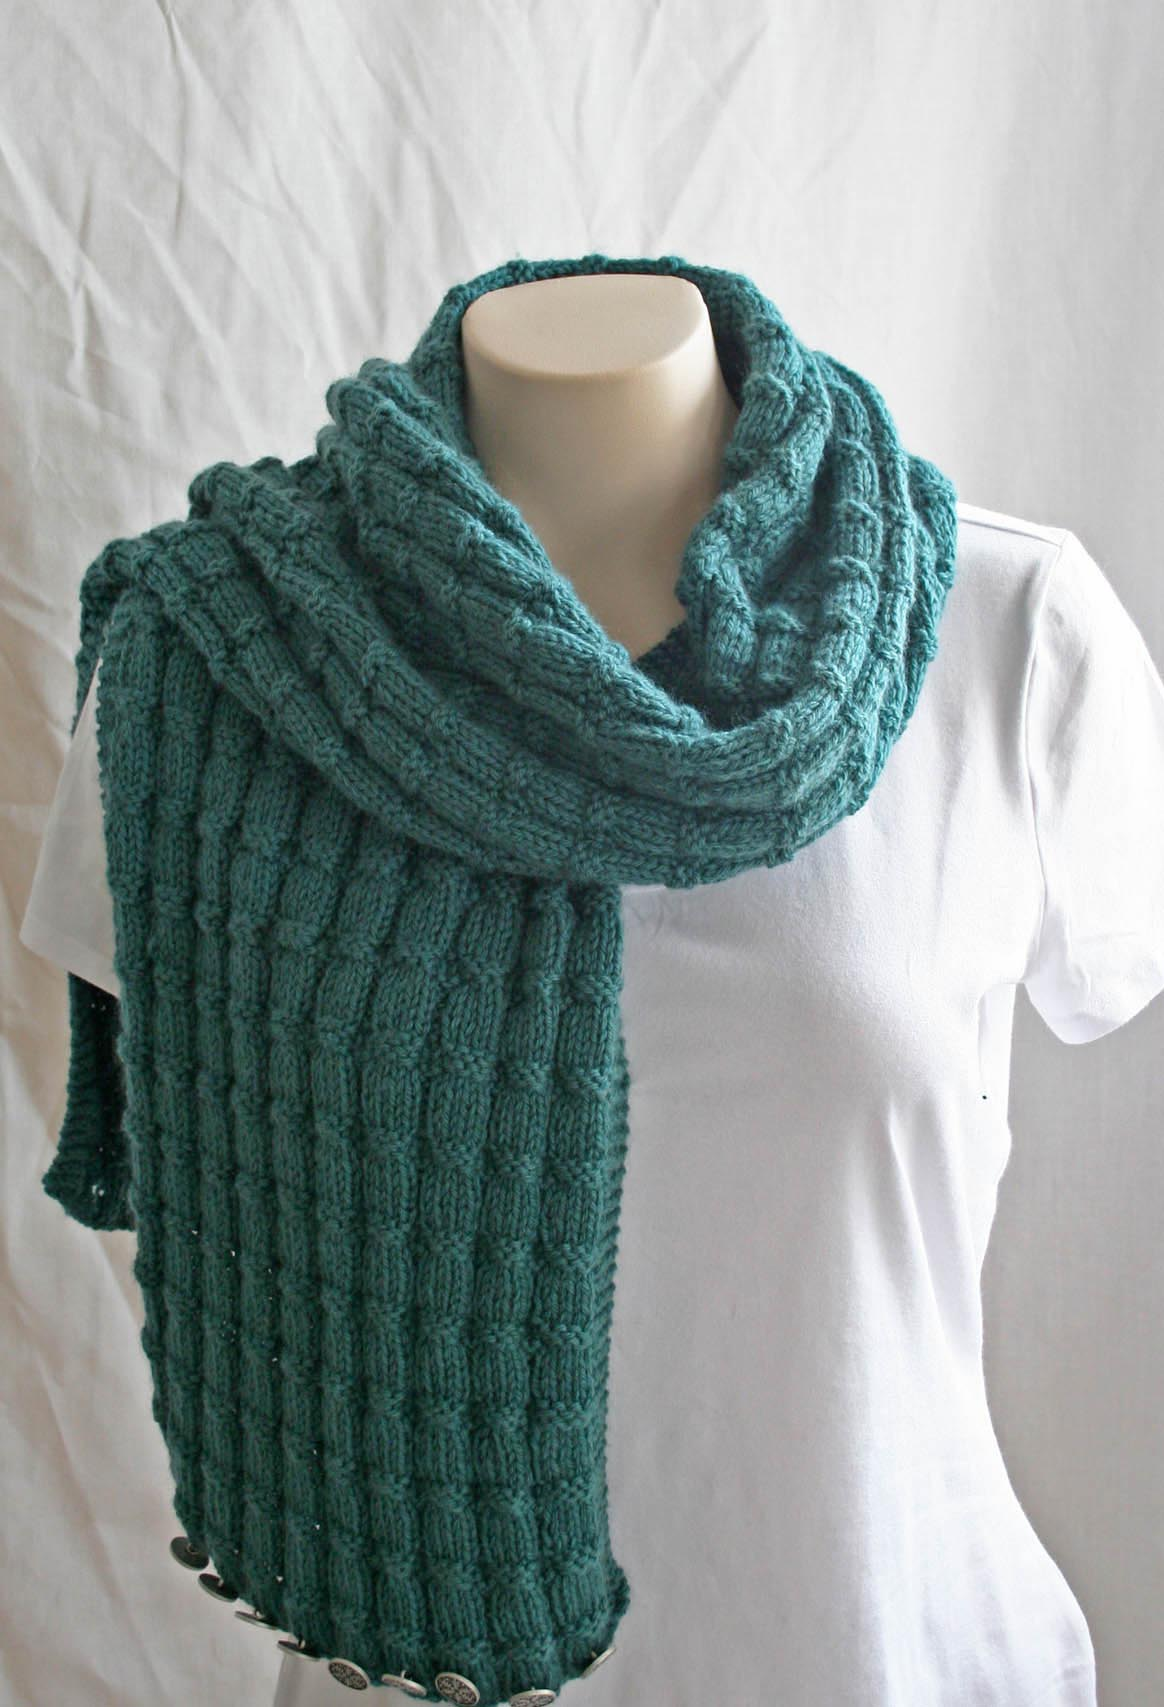 Free Knitting Patterns To Print Off : How to Knit this Beautiful Knitting Spruce Cowl for Free